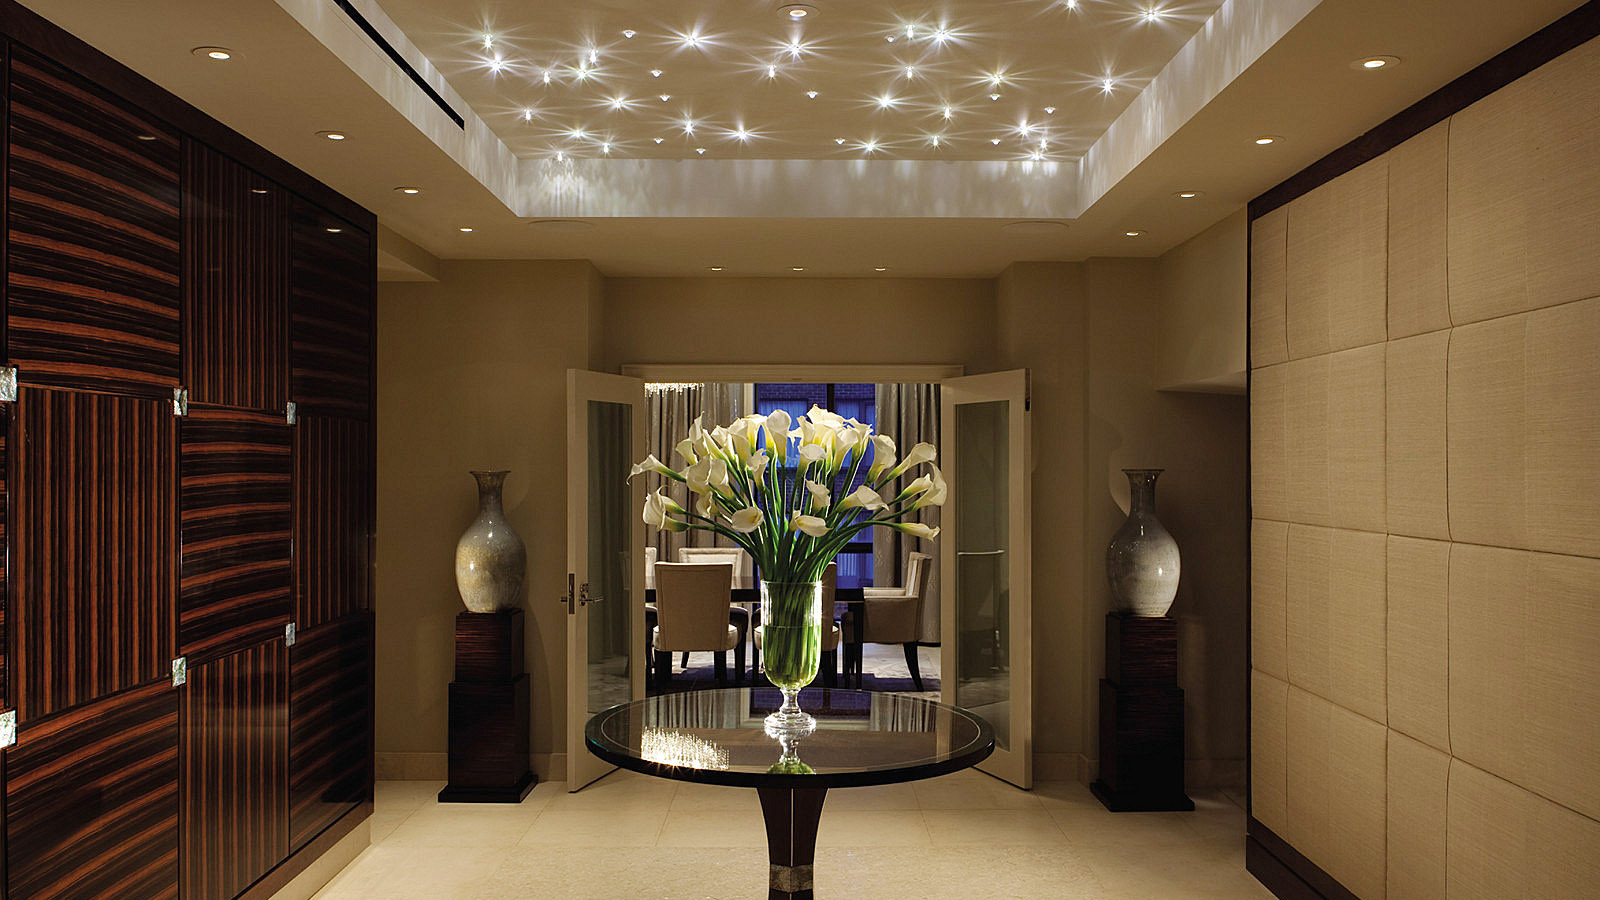 Hotel Entrance Foyer : Royal suite at four seasons hotel washington dc redefines luxury